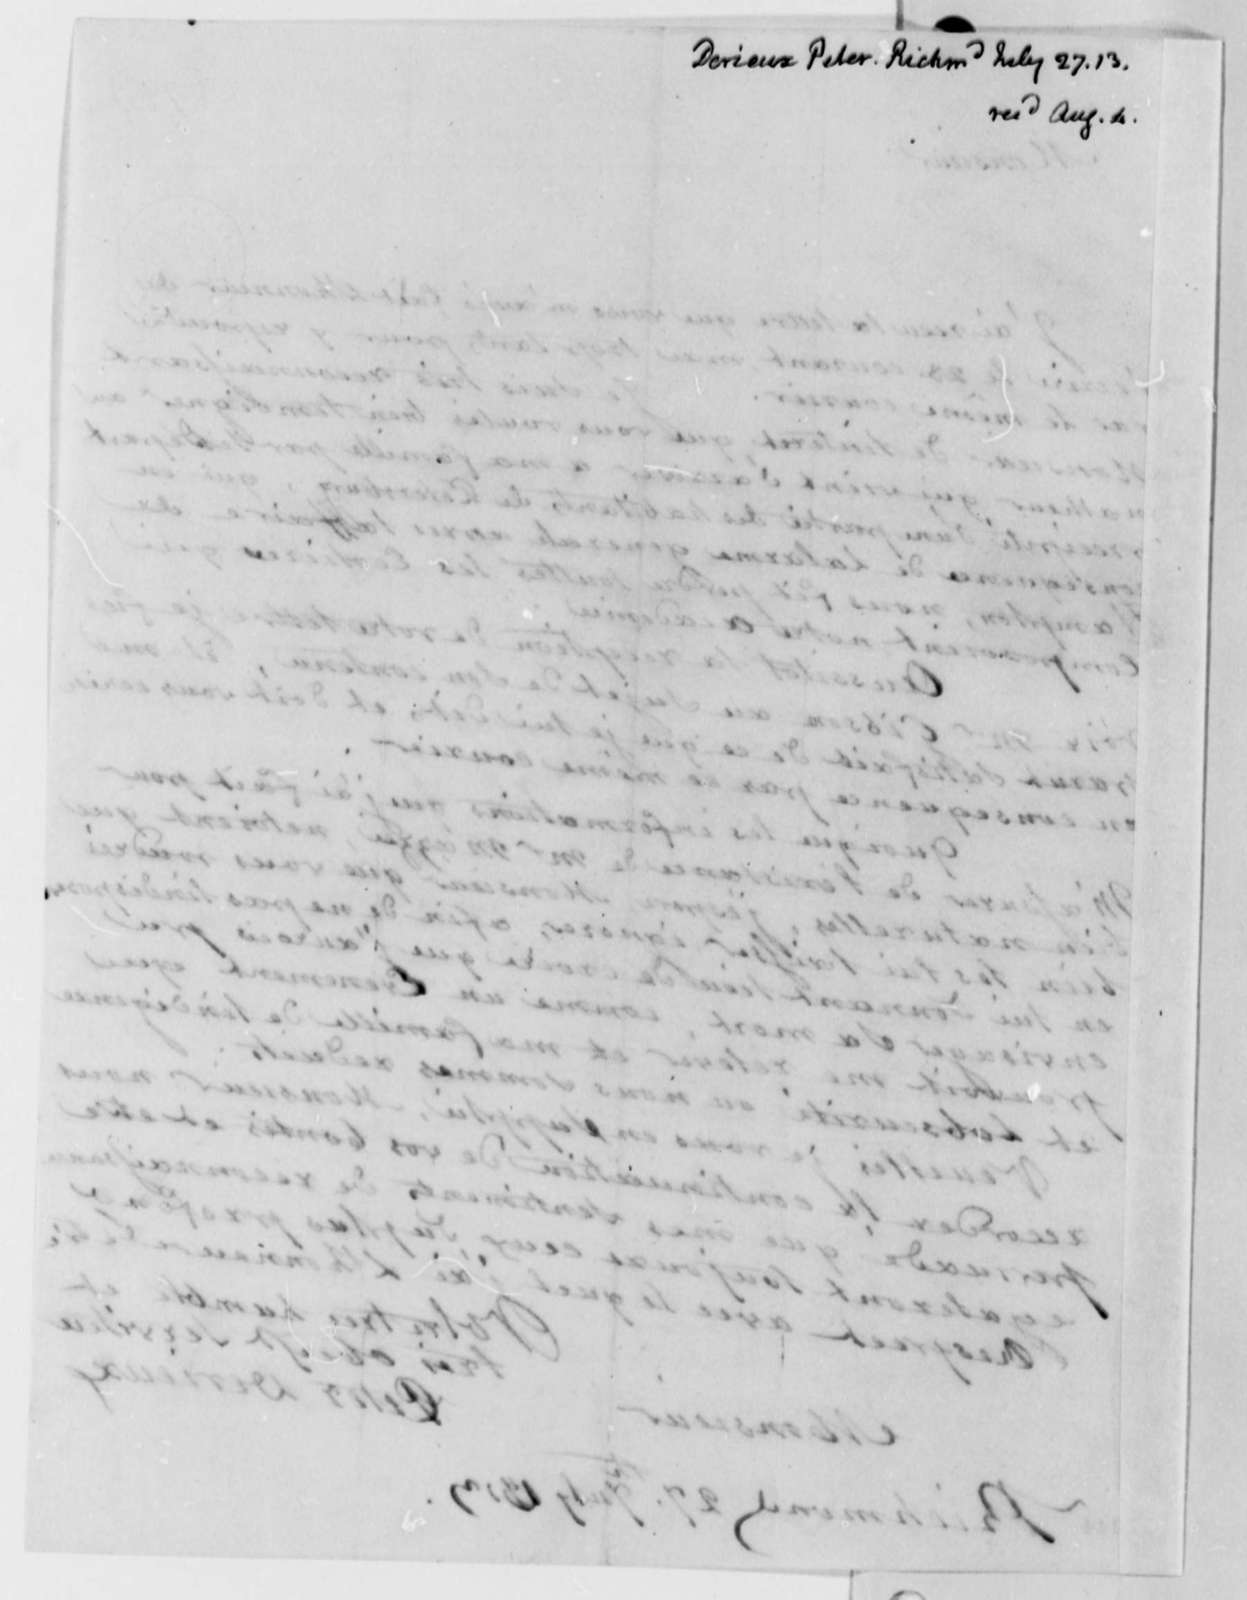 Justin Pierre Plumard Derieux to Thomas Jefferson, July 27, 1813, in French